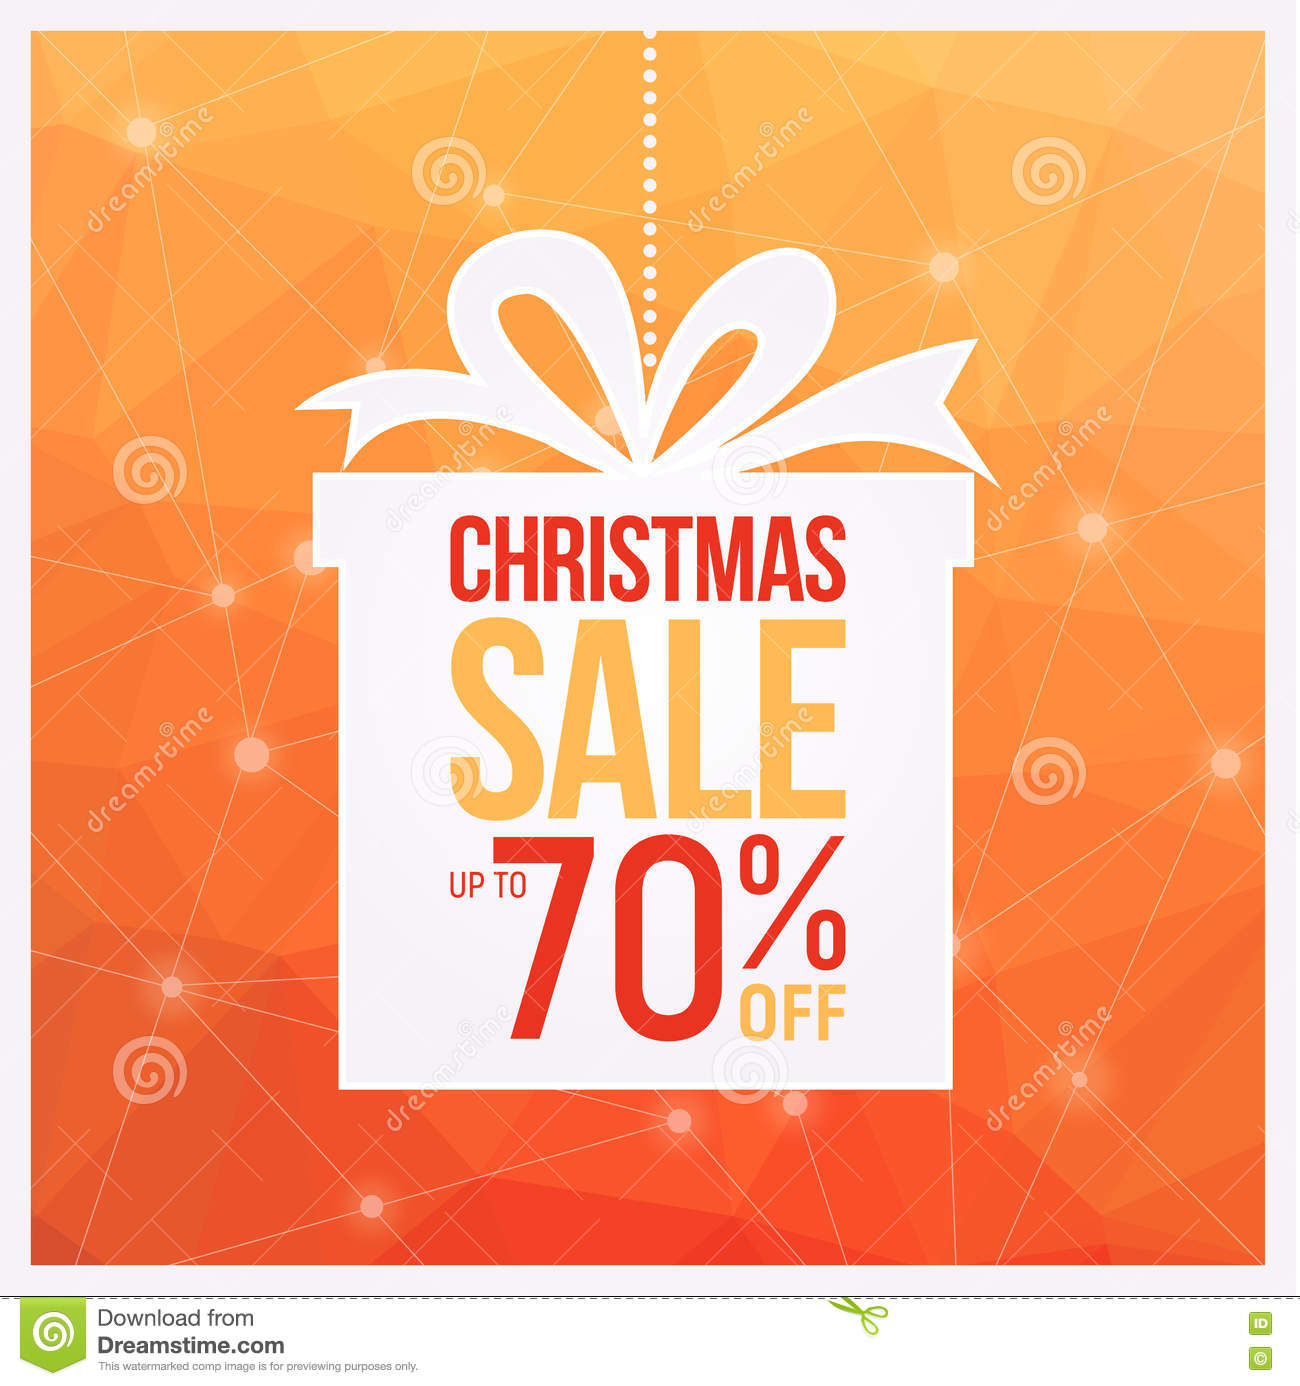 Christmas Gift Sale Flyers Orange Colors, Can Be Used As Poster Or ...